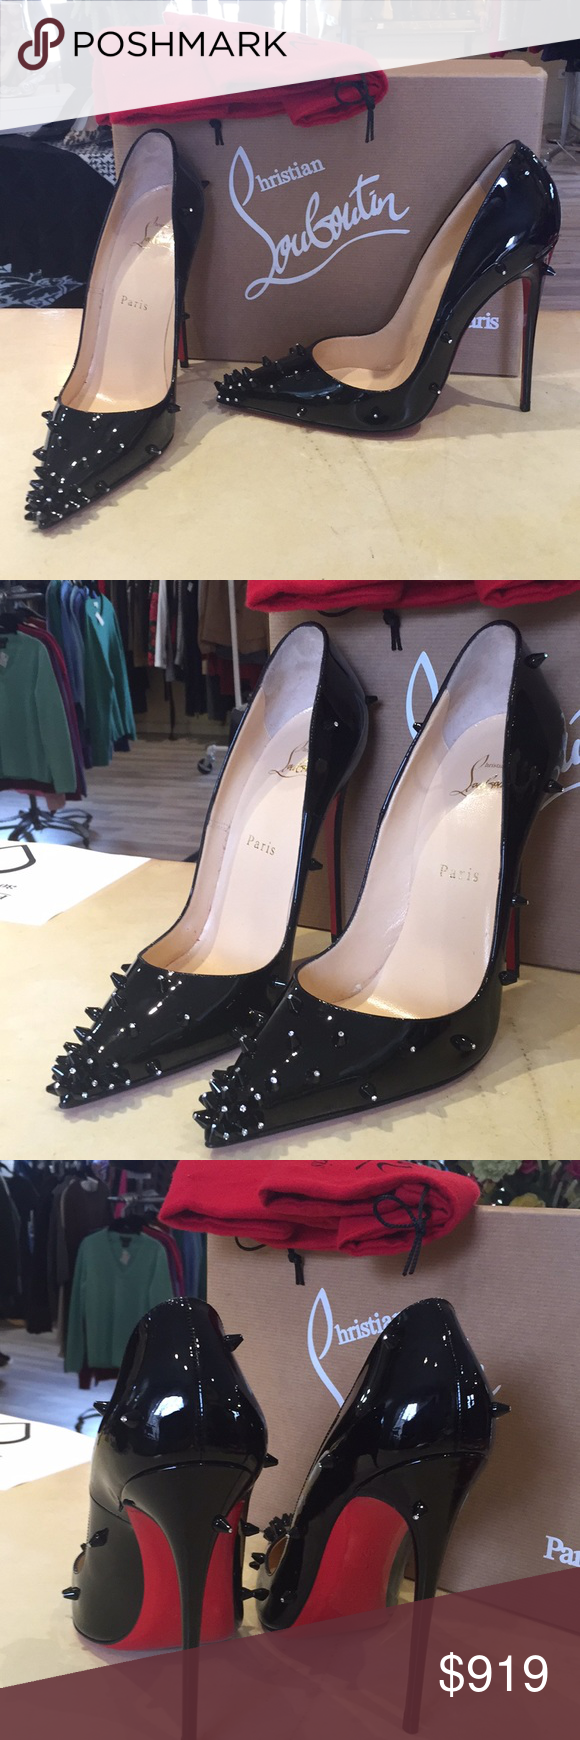 7b997824cf3d Christian Louboutin Diamond Spike Pump NEW 39 Black patent leather Louboutin  spike diamond pumps perfect condition